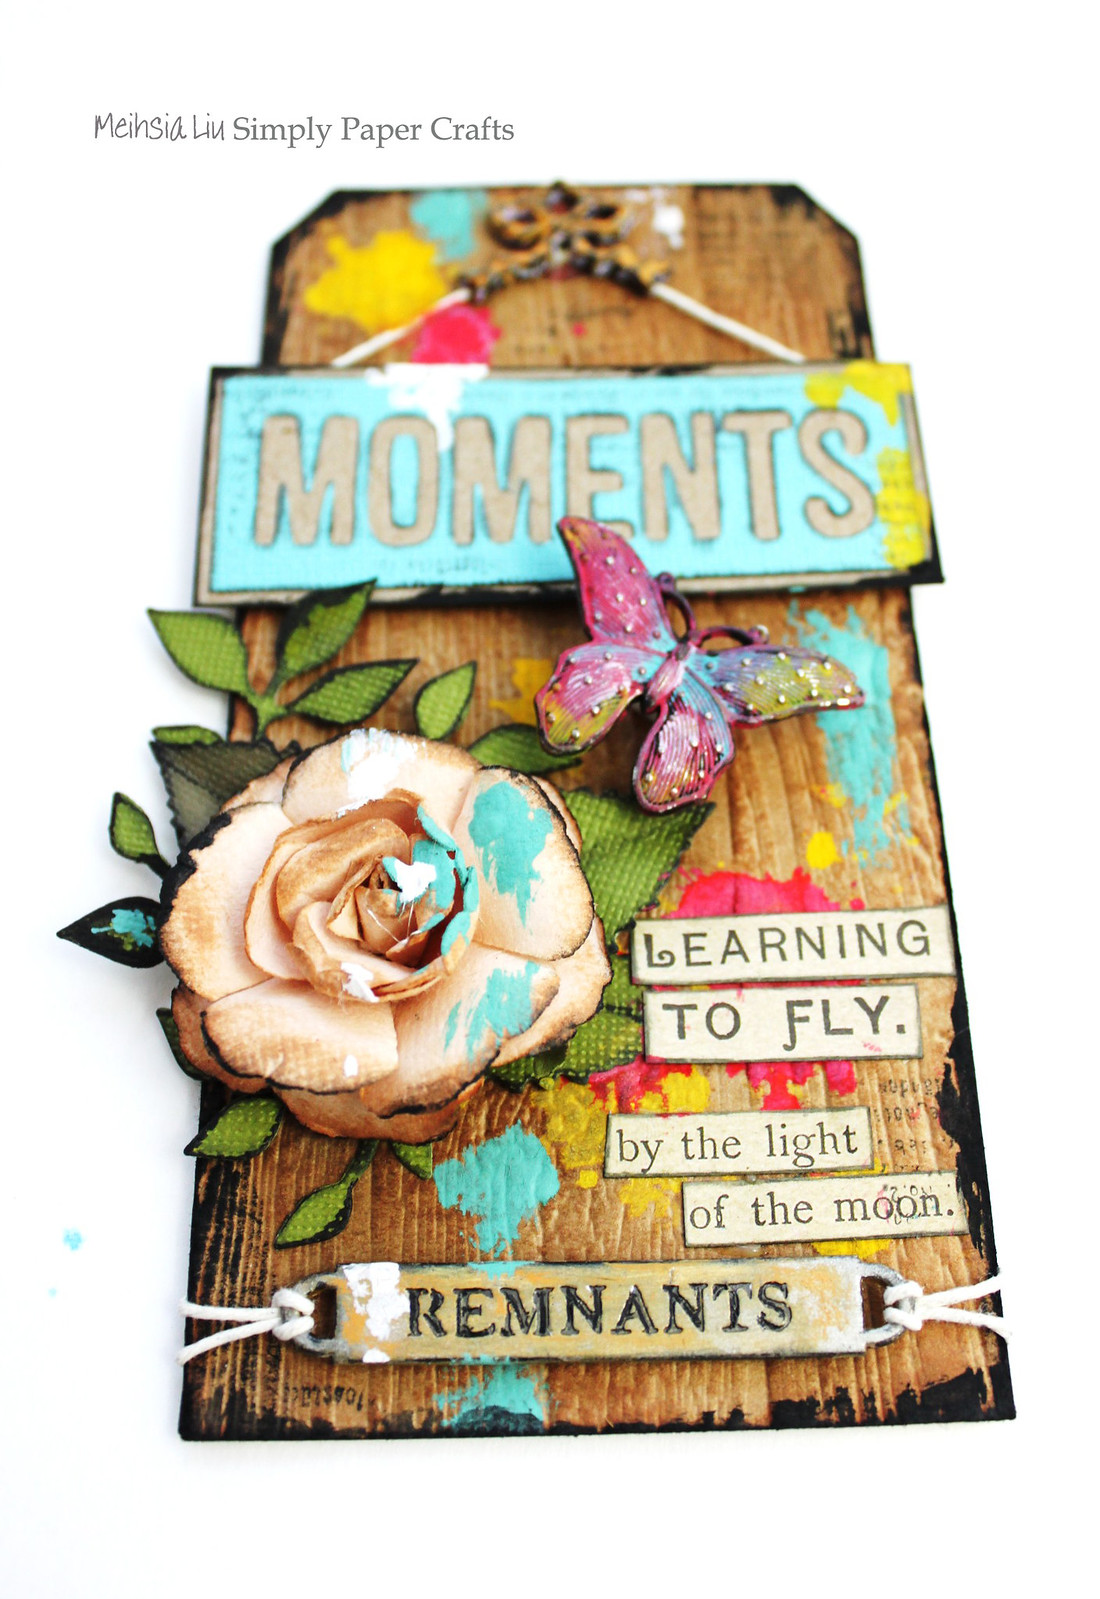 Meihsia Liu Simply Paper Crafts Mixed Media Tag Kraft Fly Simon Says Stamp Tim Holtz Prima Flowers 1